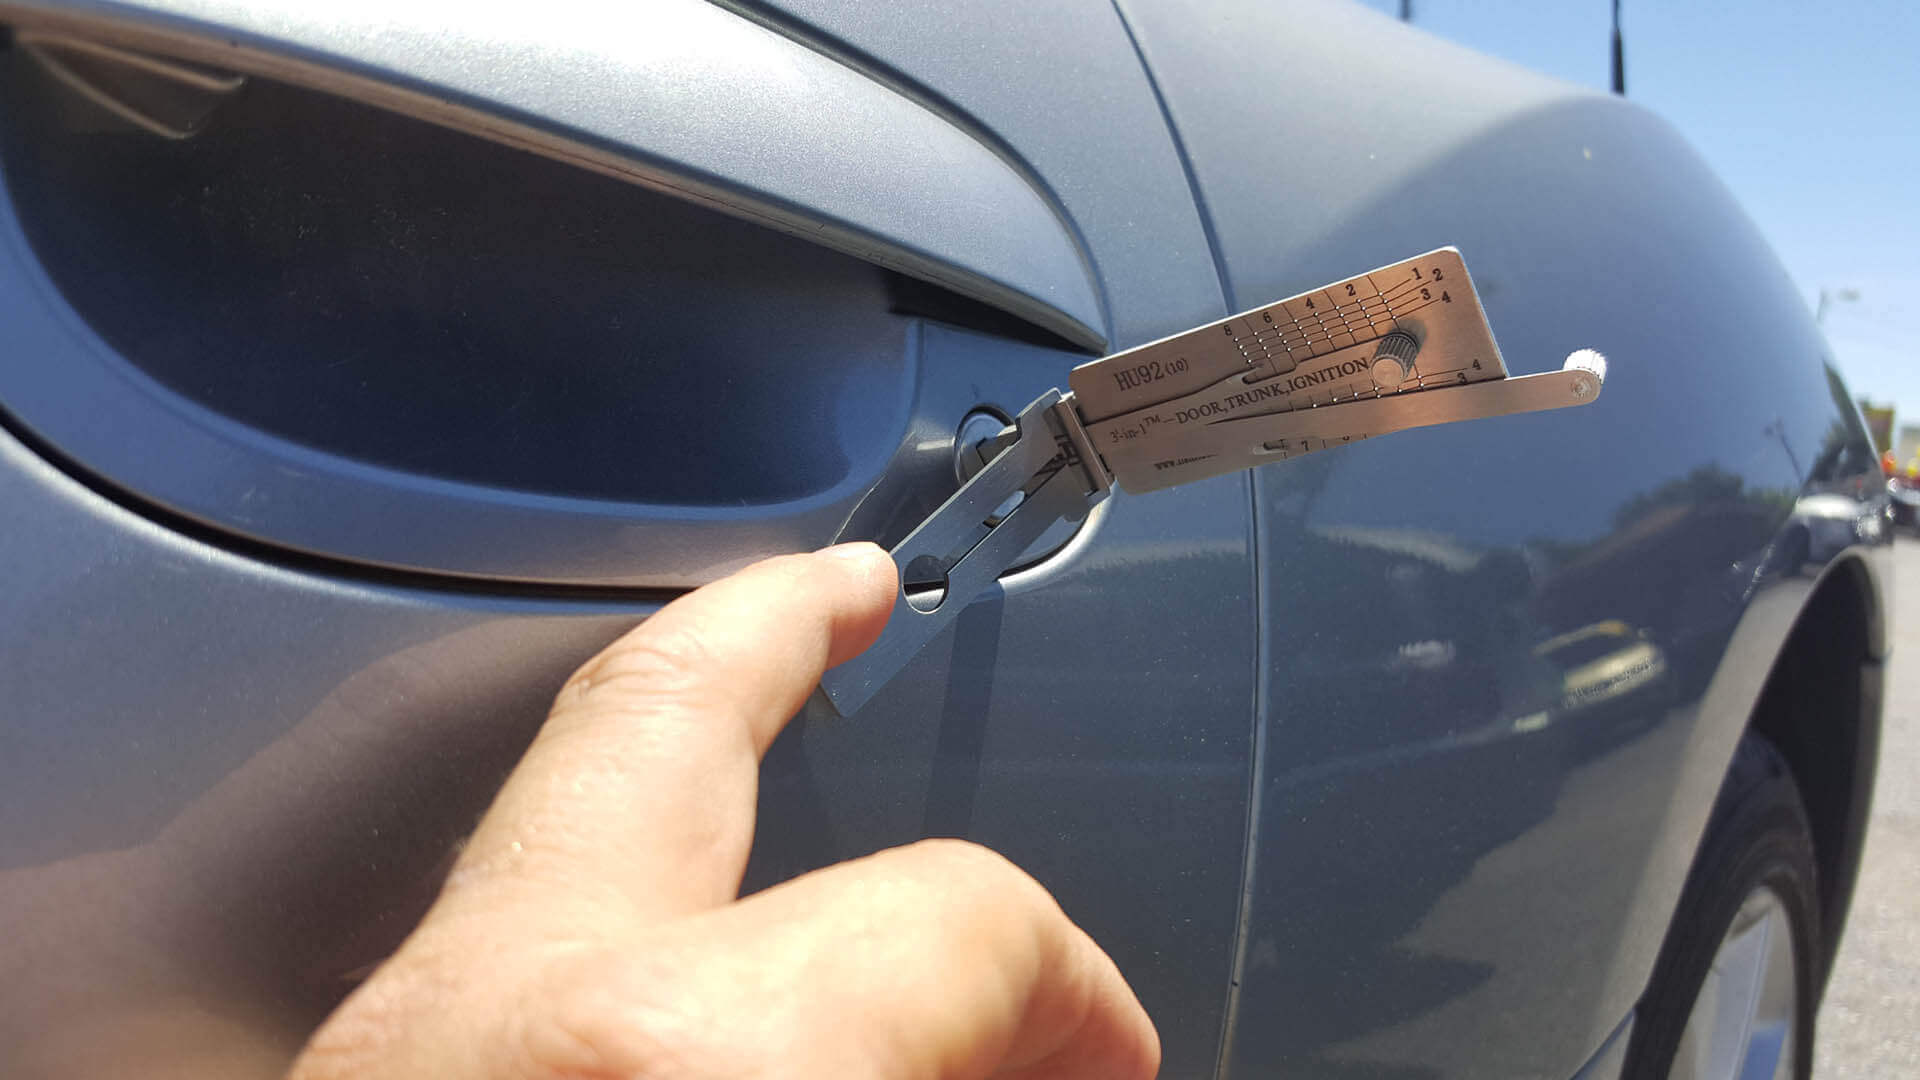 Locksmith making replacement keys for car.